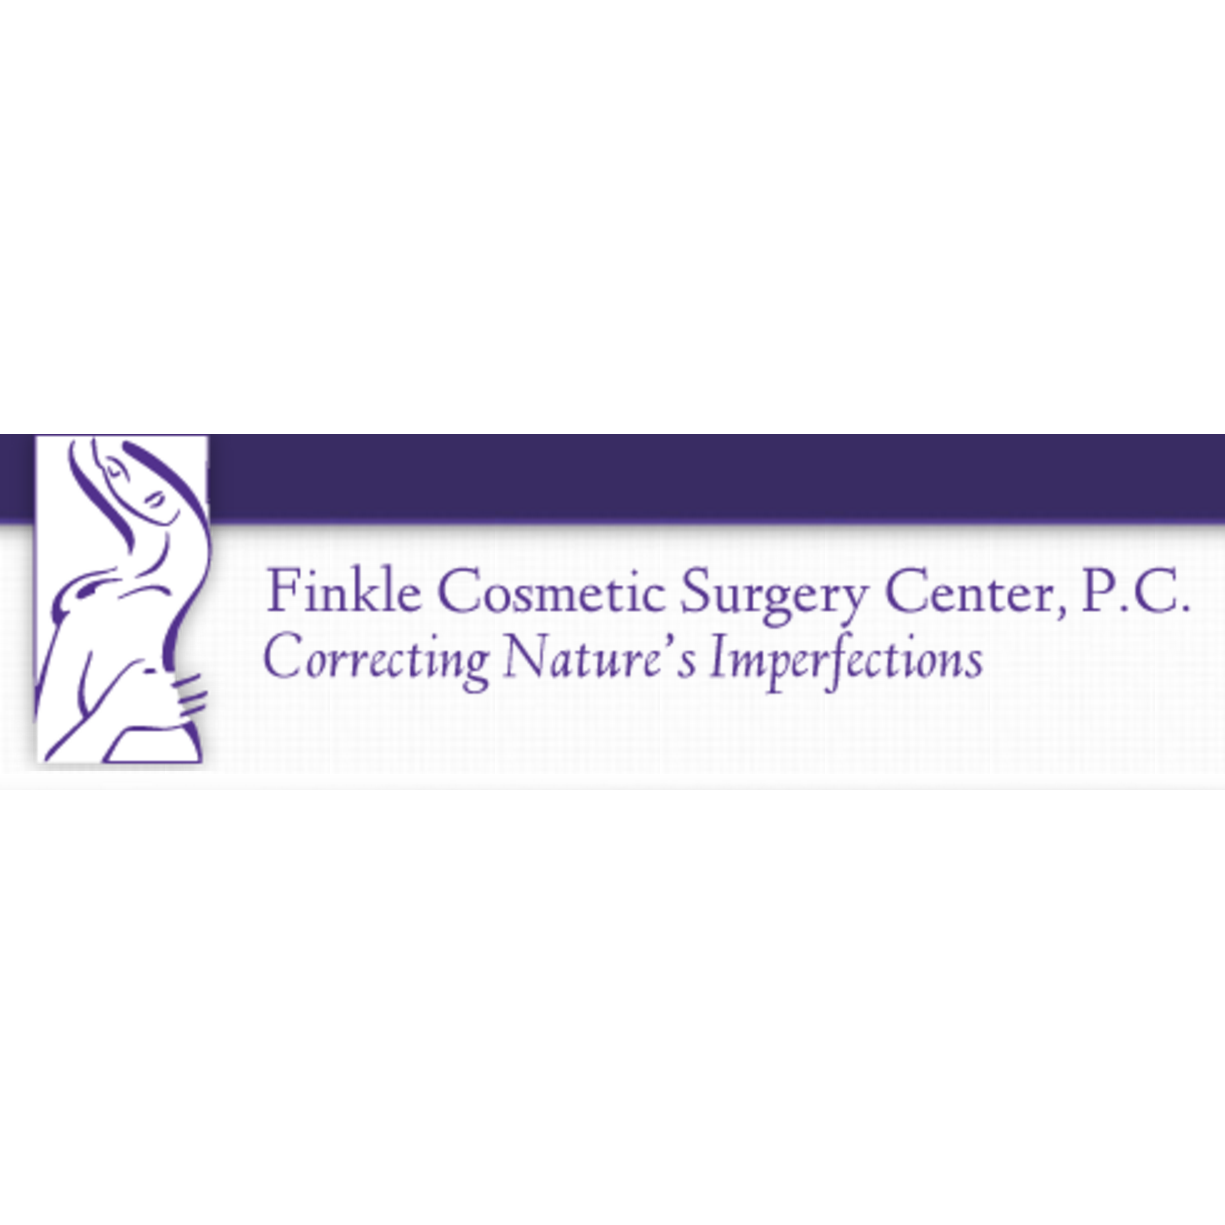 Finkle Cosmetic Surgery Center